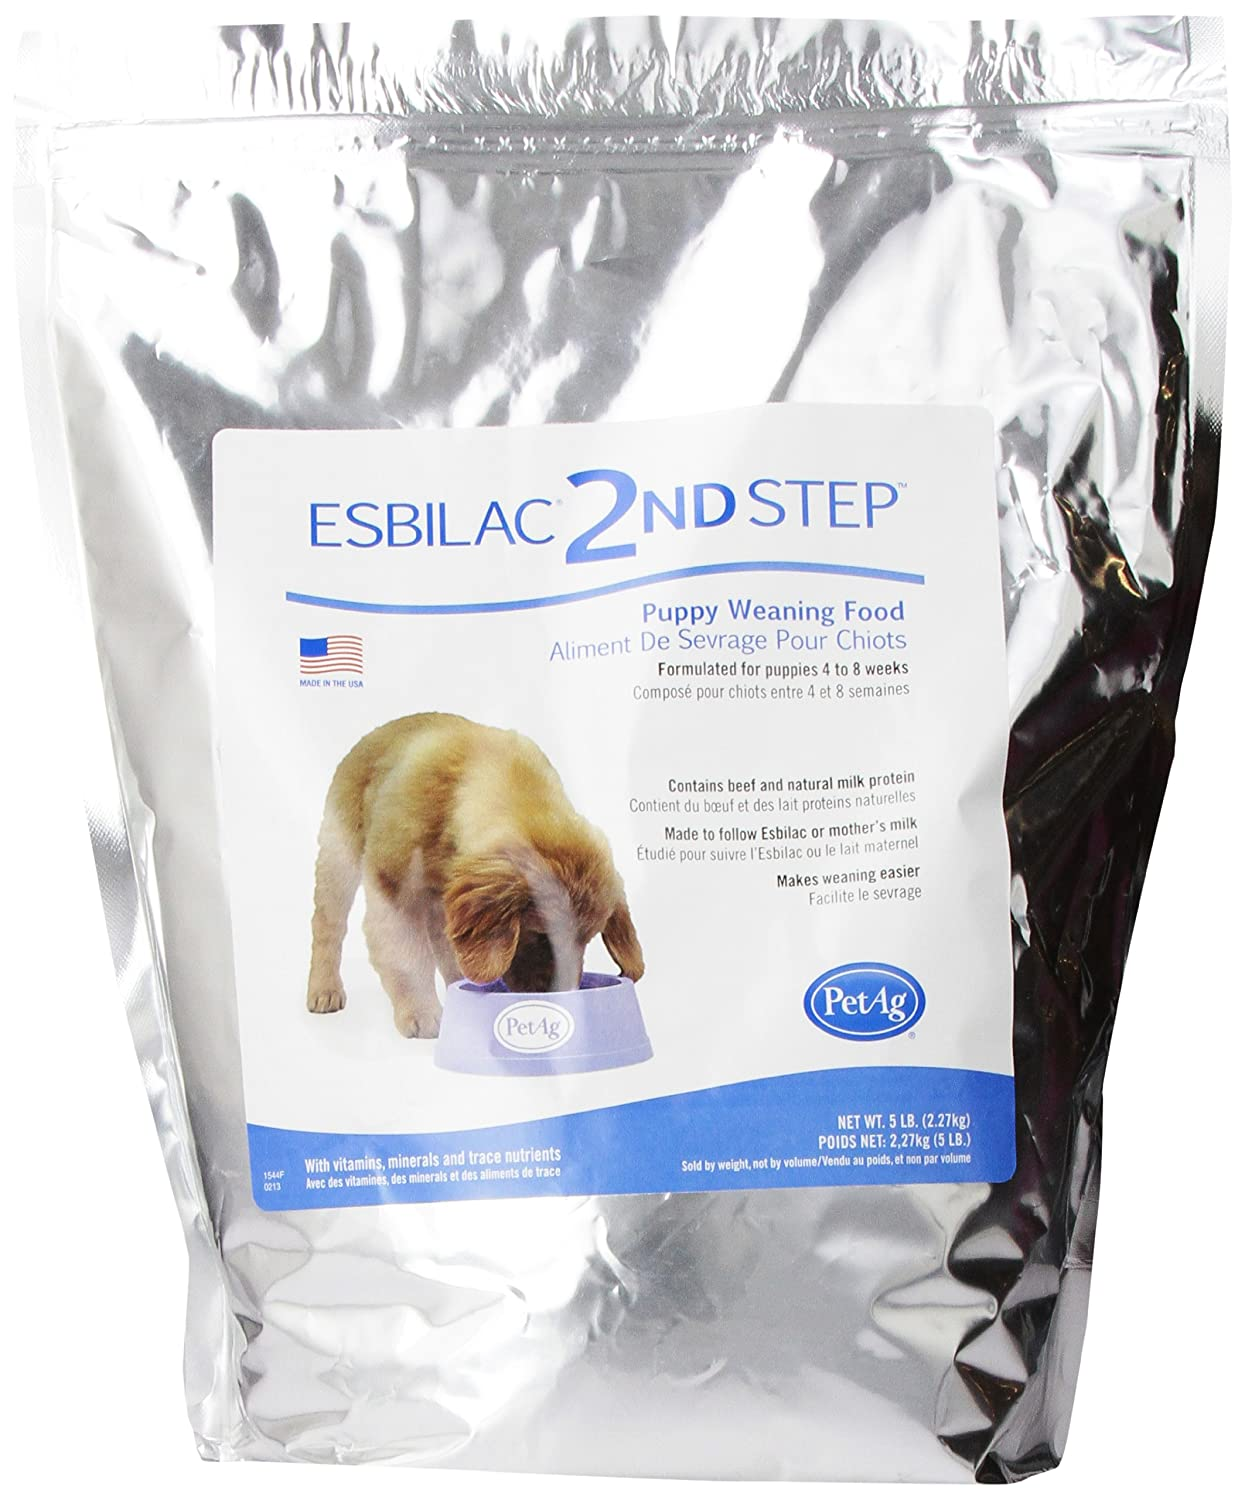 PetAg Esbilac 2nd Step Puppy Weaning Food 14oz